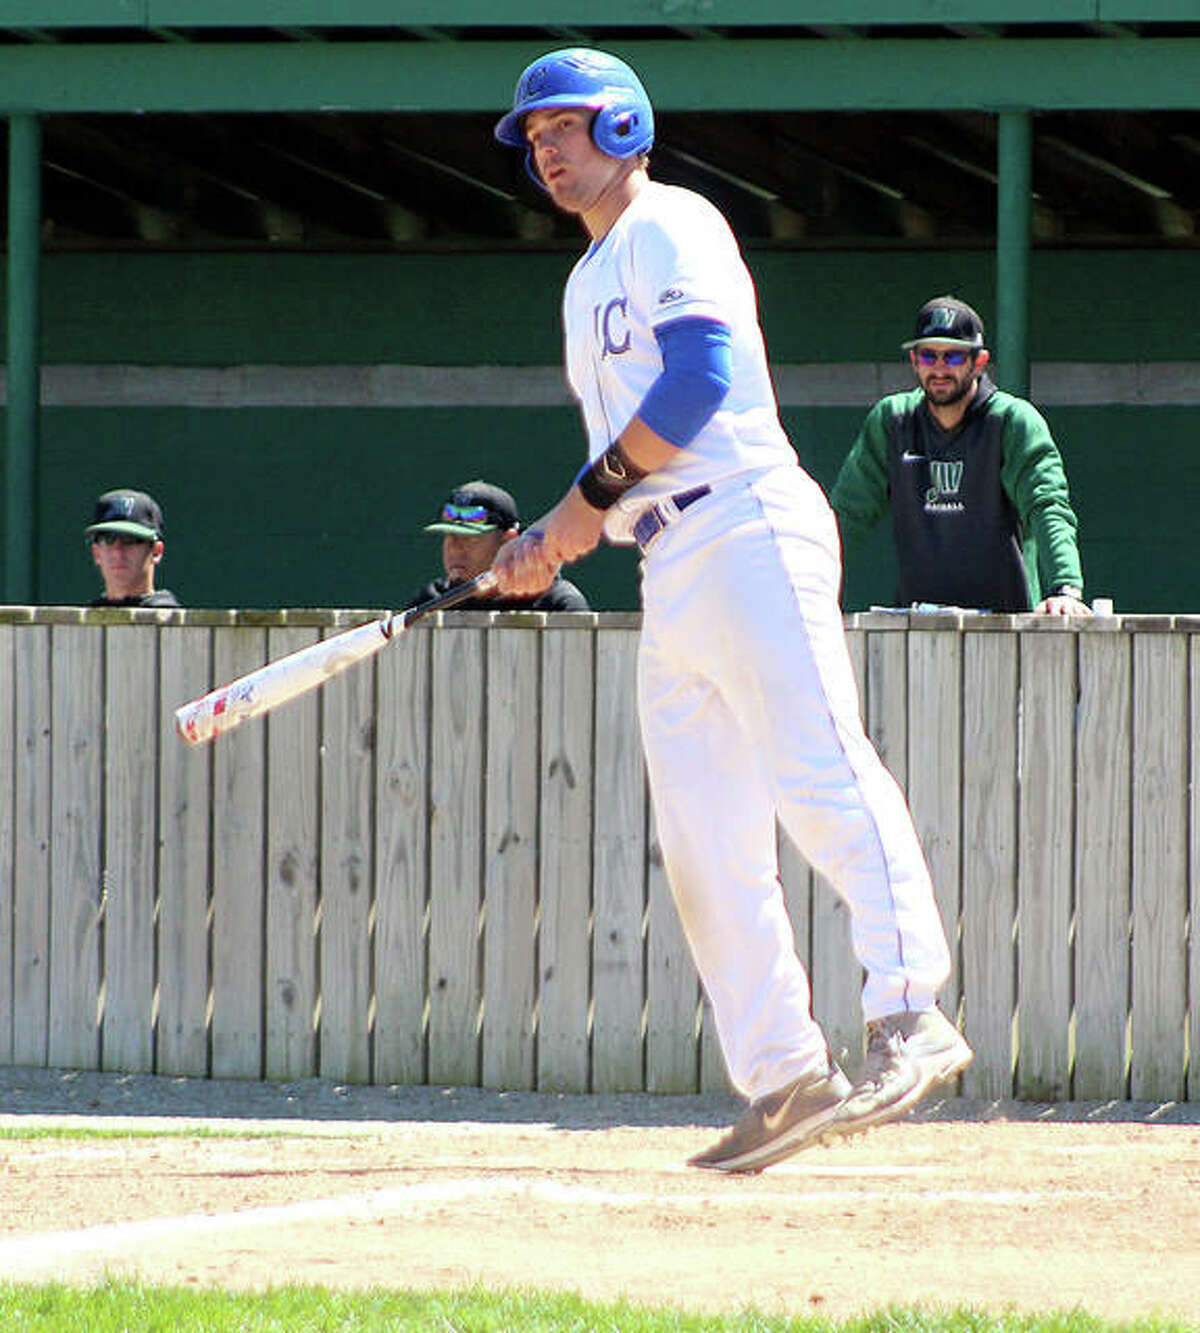 Nick Wilke of Lewis and Clark, a freshman from Wentzville, Mo., is batting .317 with with six doubles, a triple and a home run for the 26-13 Trailblazers. Above, he watches a base hit against John Wood College.